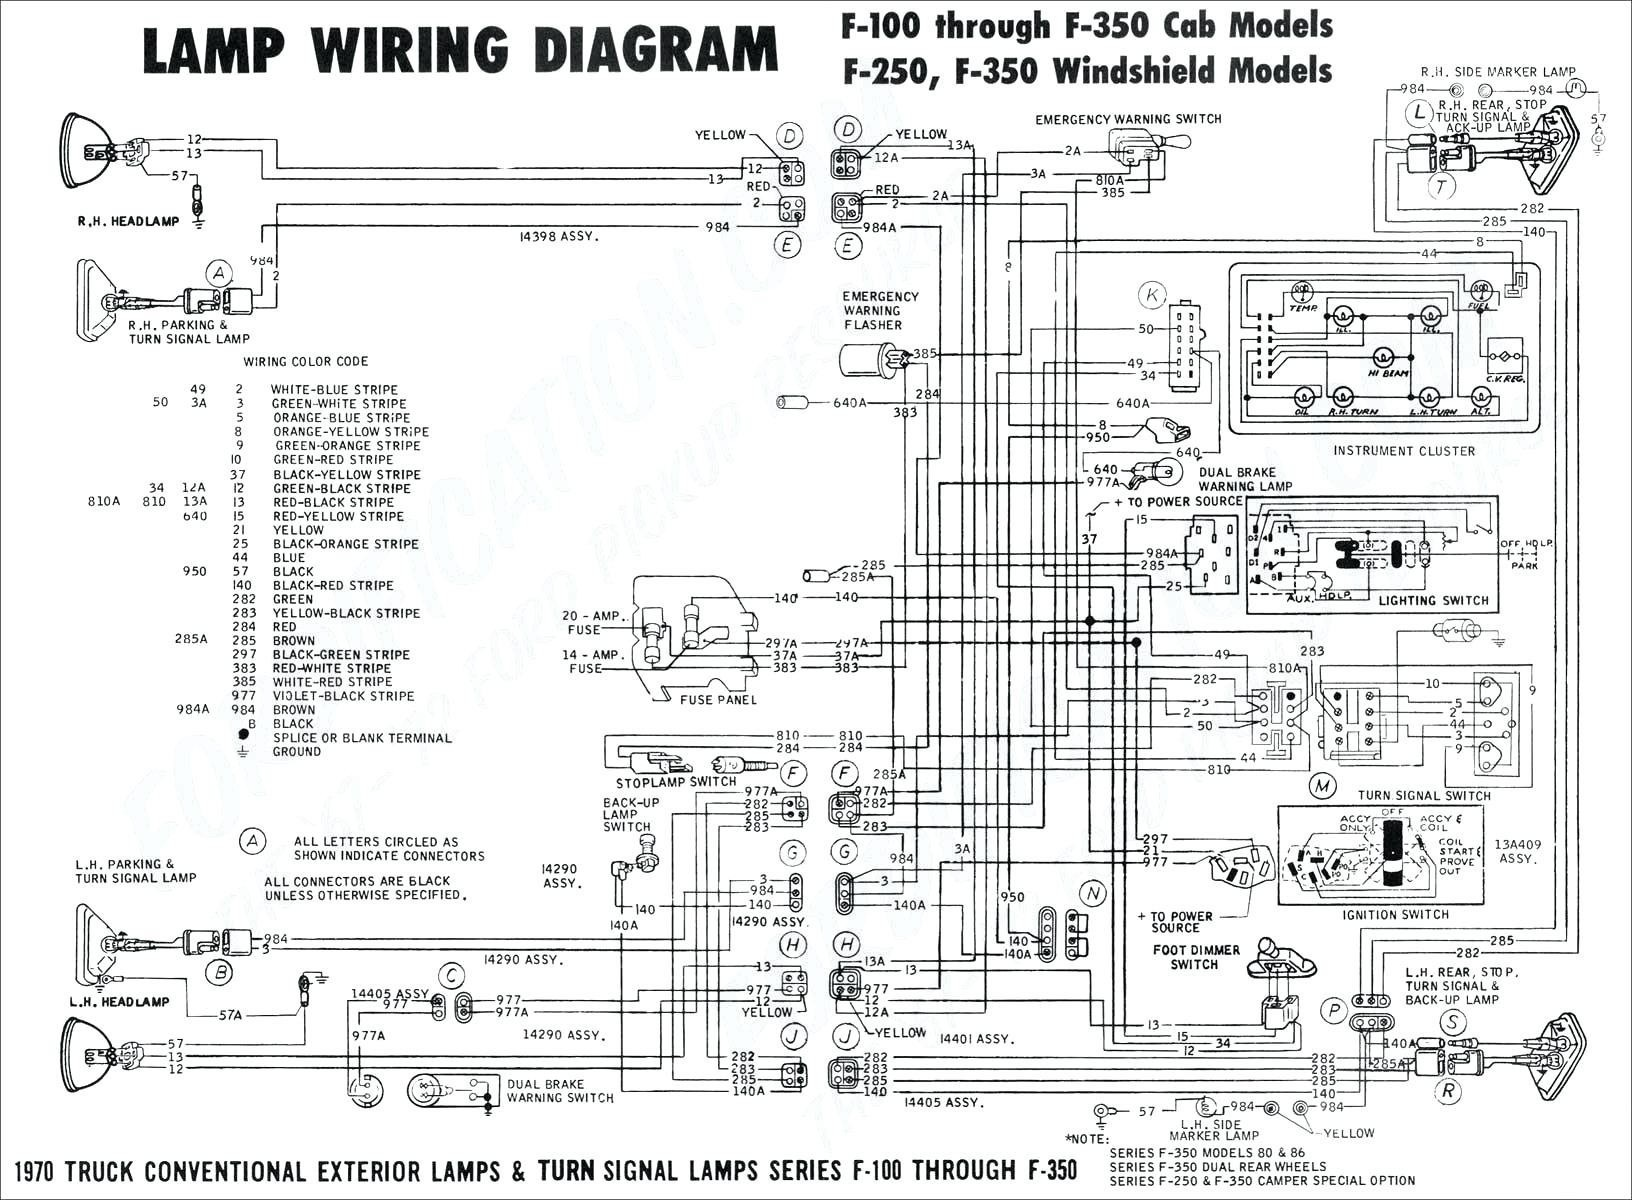 Nissan Murano Engine Diagram Af Wiring Diagram Jb640 Ge Manuals for Stoves Of Nissan Murano Engine Diagram